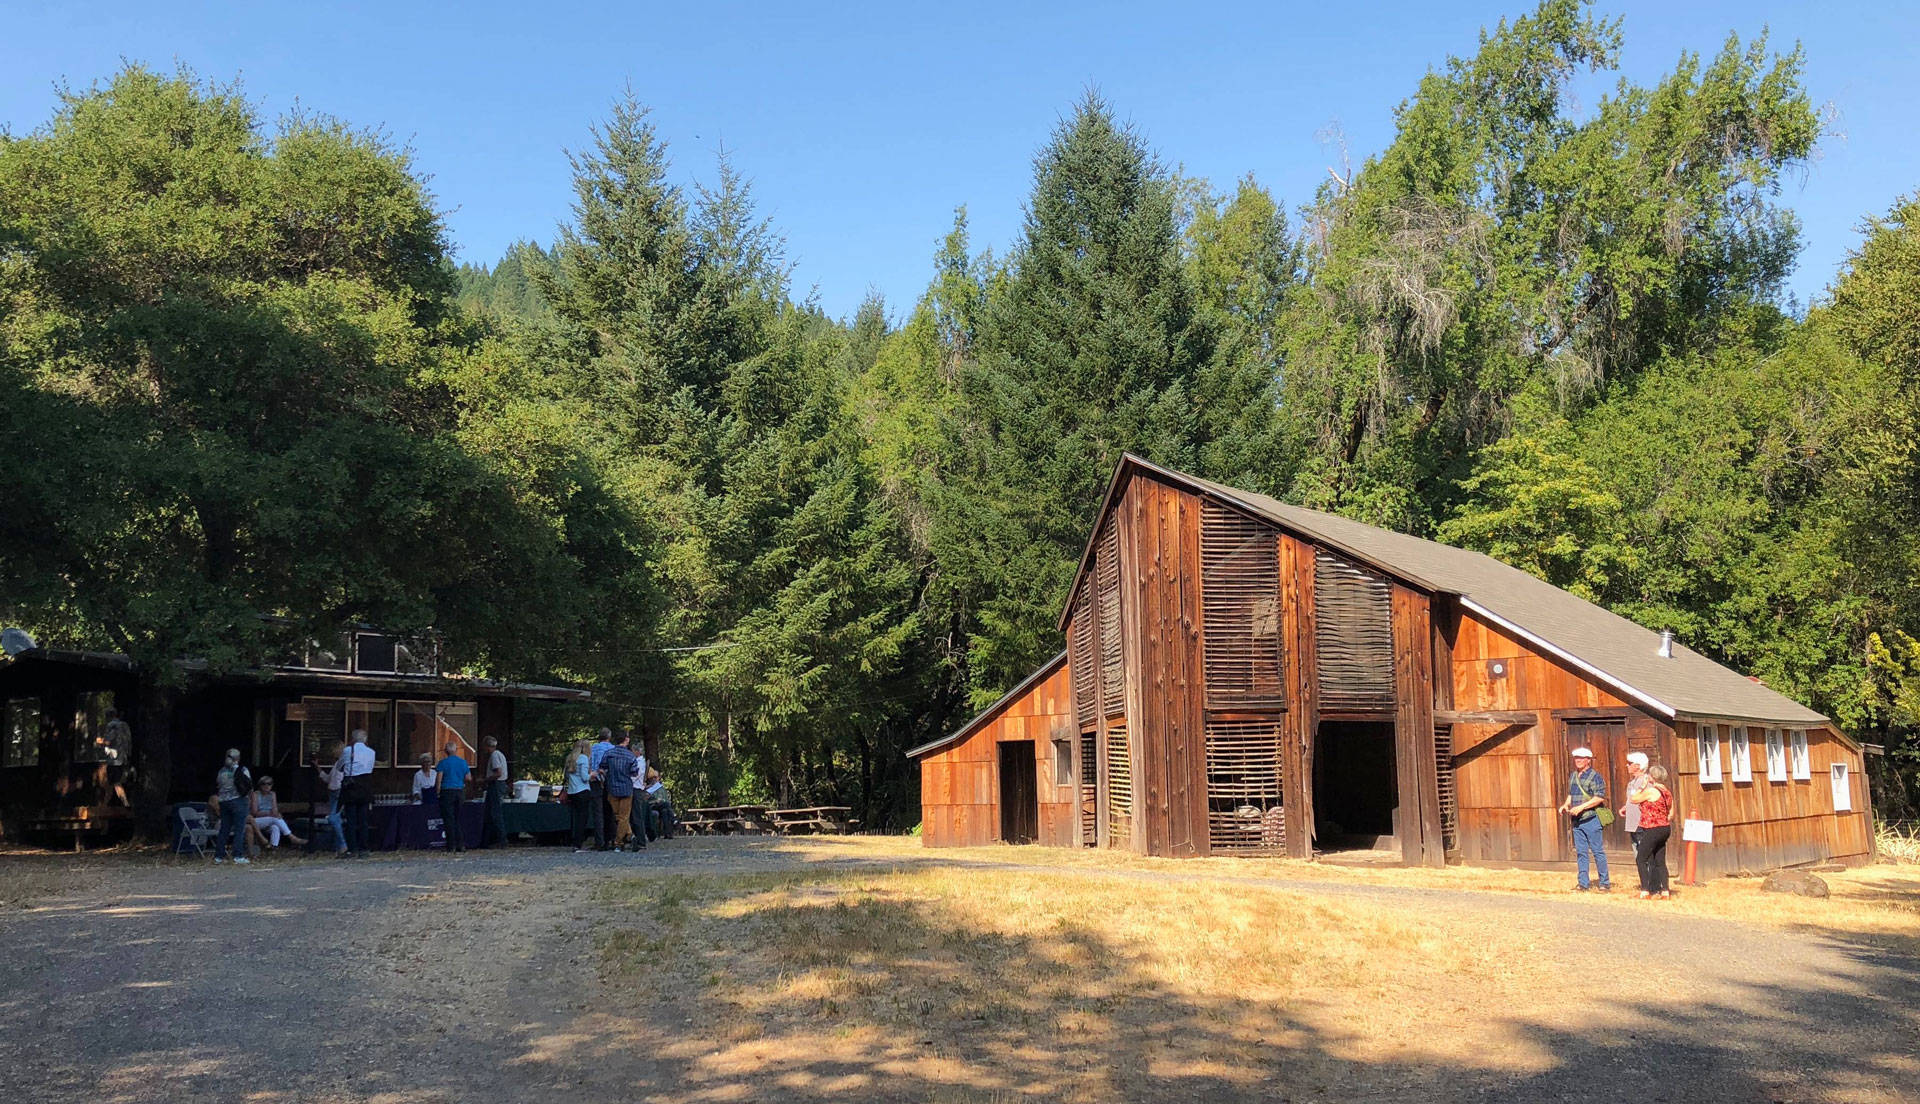 A view of the old barn at Pond Farm in the Sonoma Redwoods, where master potter Marguerite Wildenhain lived and worked for more than 40 years. Chloe Veltman/KQED